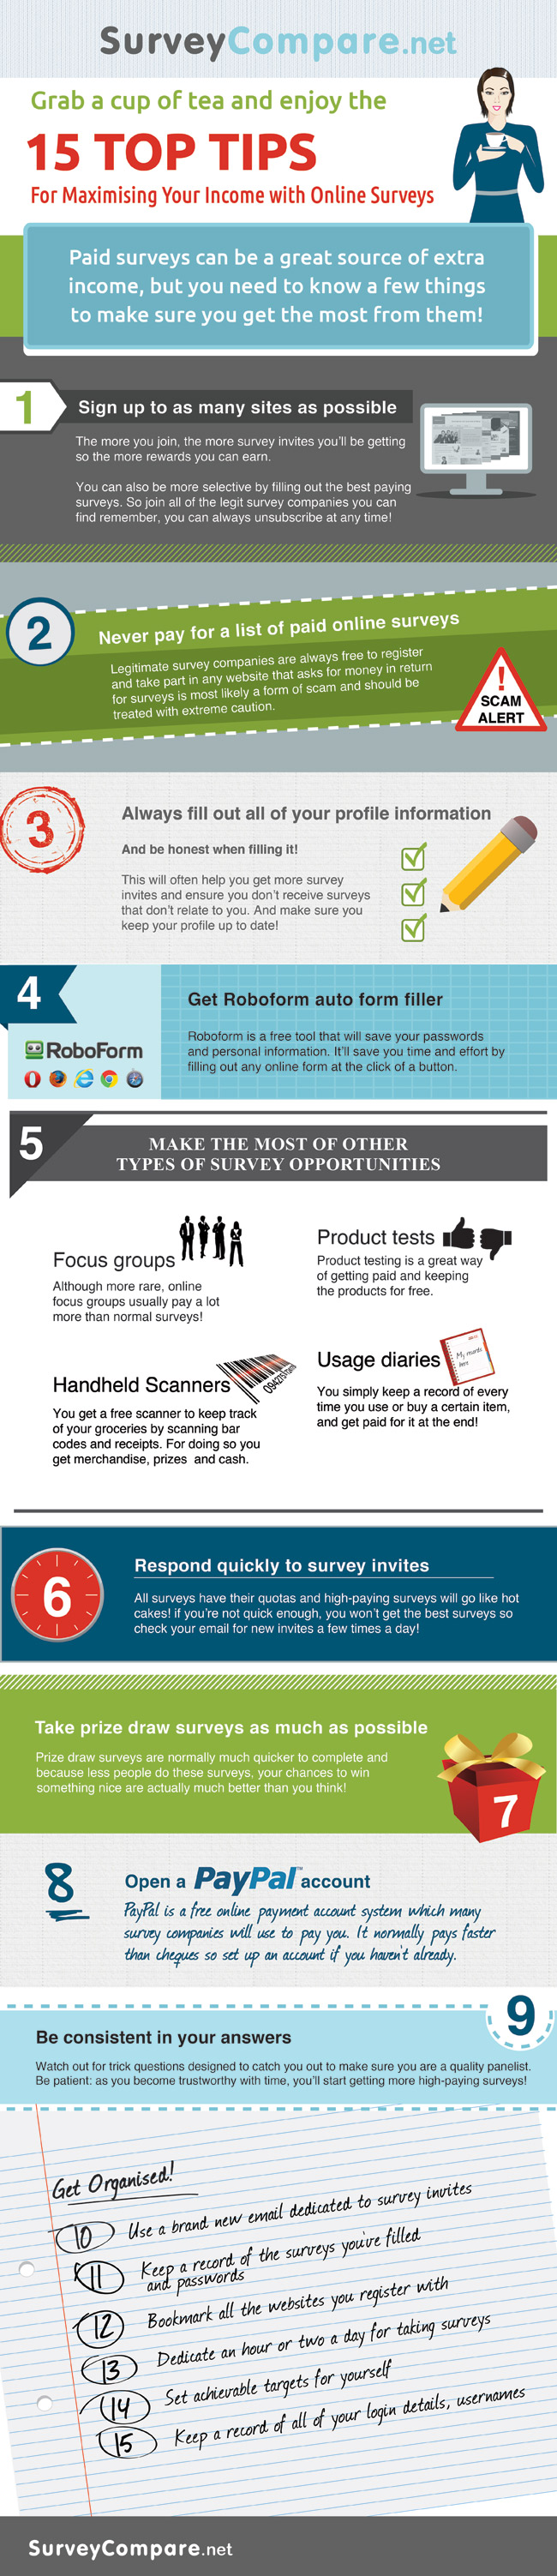 How to Earn More With Surveys [Infographic]